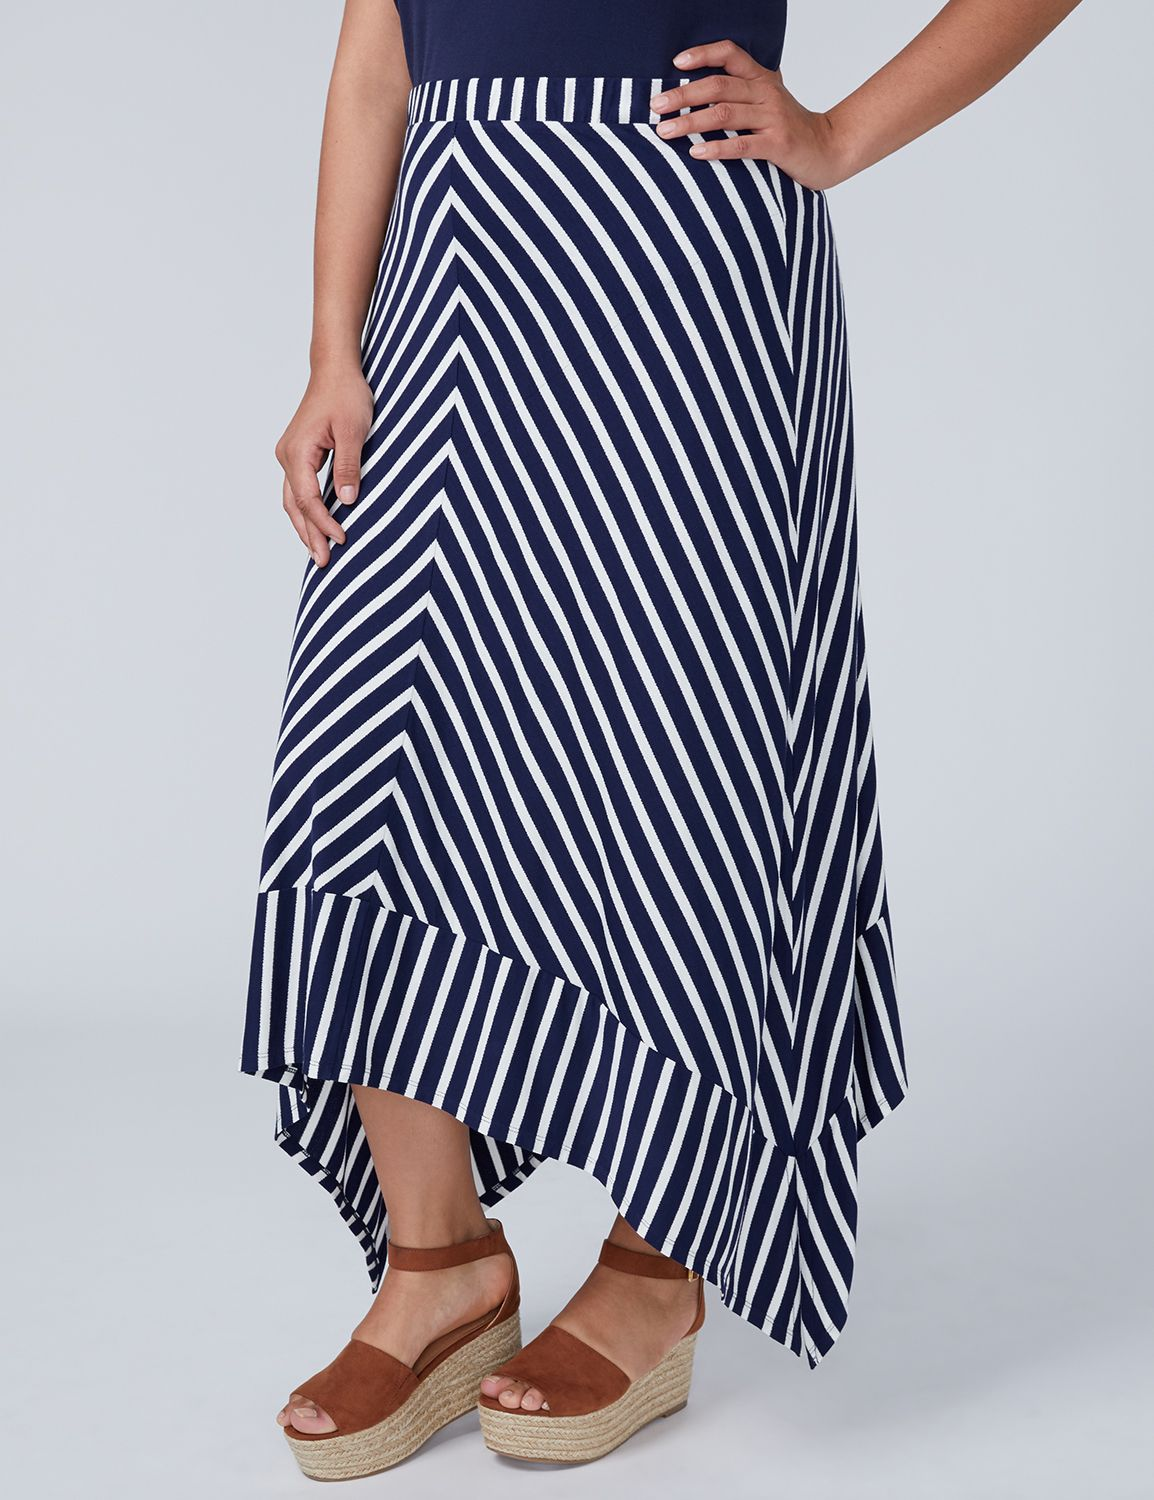 Lane Bryant Womens Midi Skirt With Sharkbite Hem 14/16 Navy And White